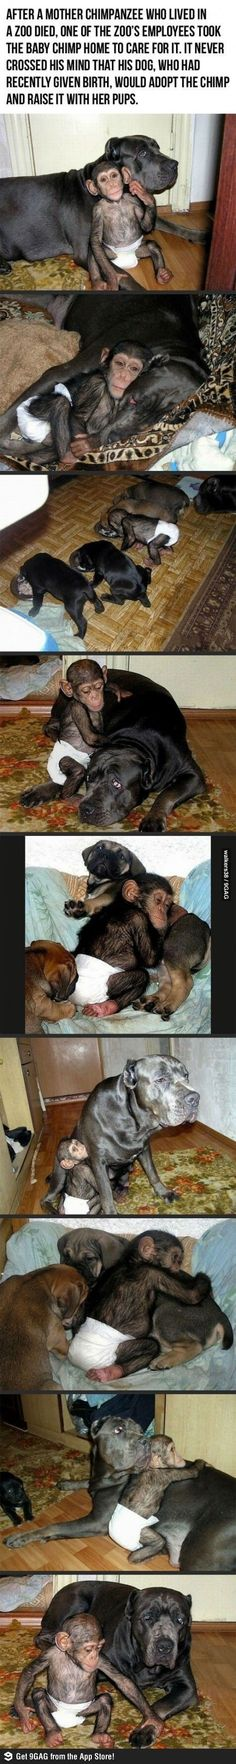 Awwww, look at it snuggling with the puppies!!!!!!